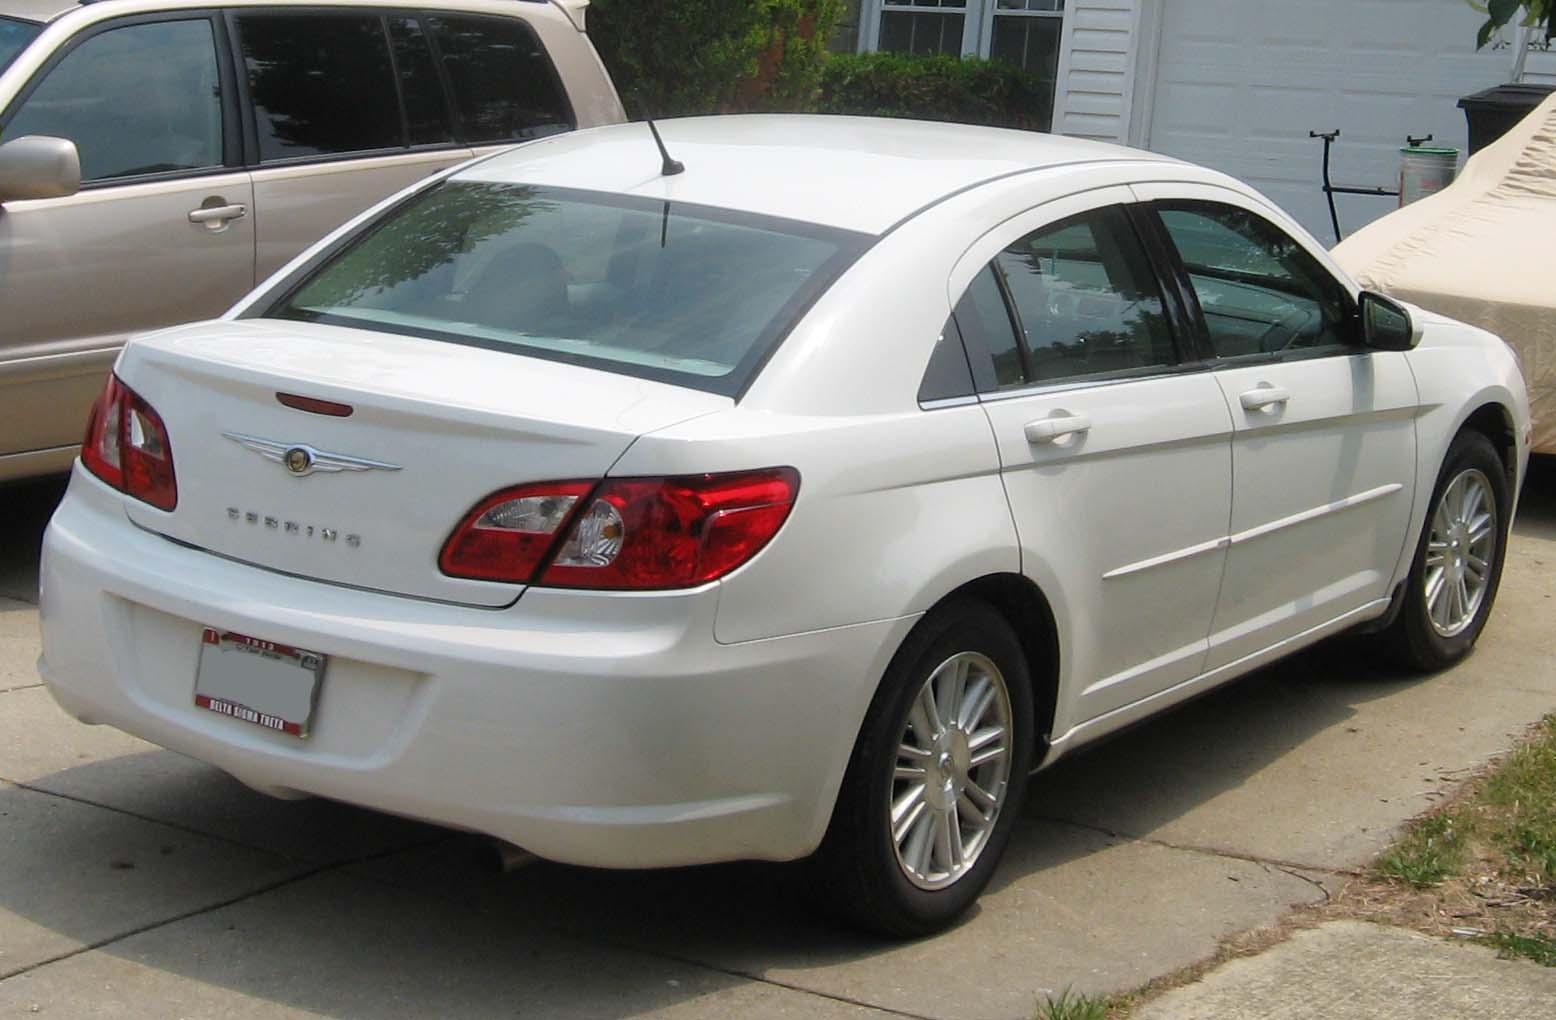 Chrysler Sebring photo 01